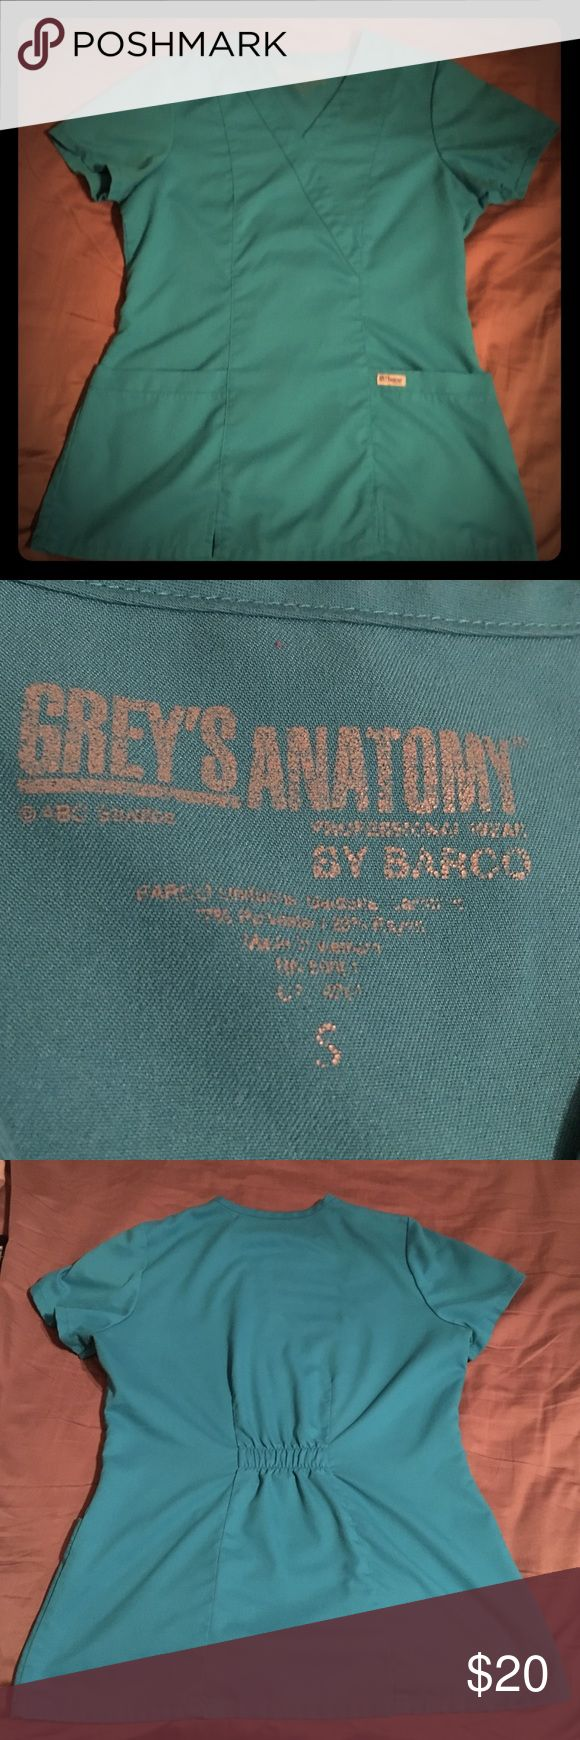 Greys Anatomy Scrub Top Teal Greys Anatomy scrub top size small. Two pockets in front. Very comfortable! Grey's Anatomy  Tops